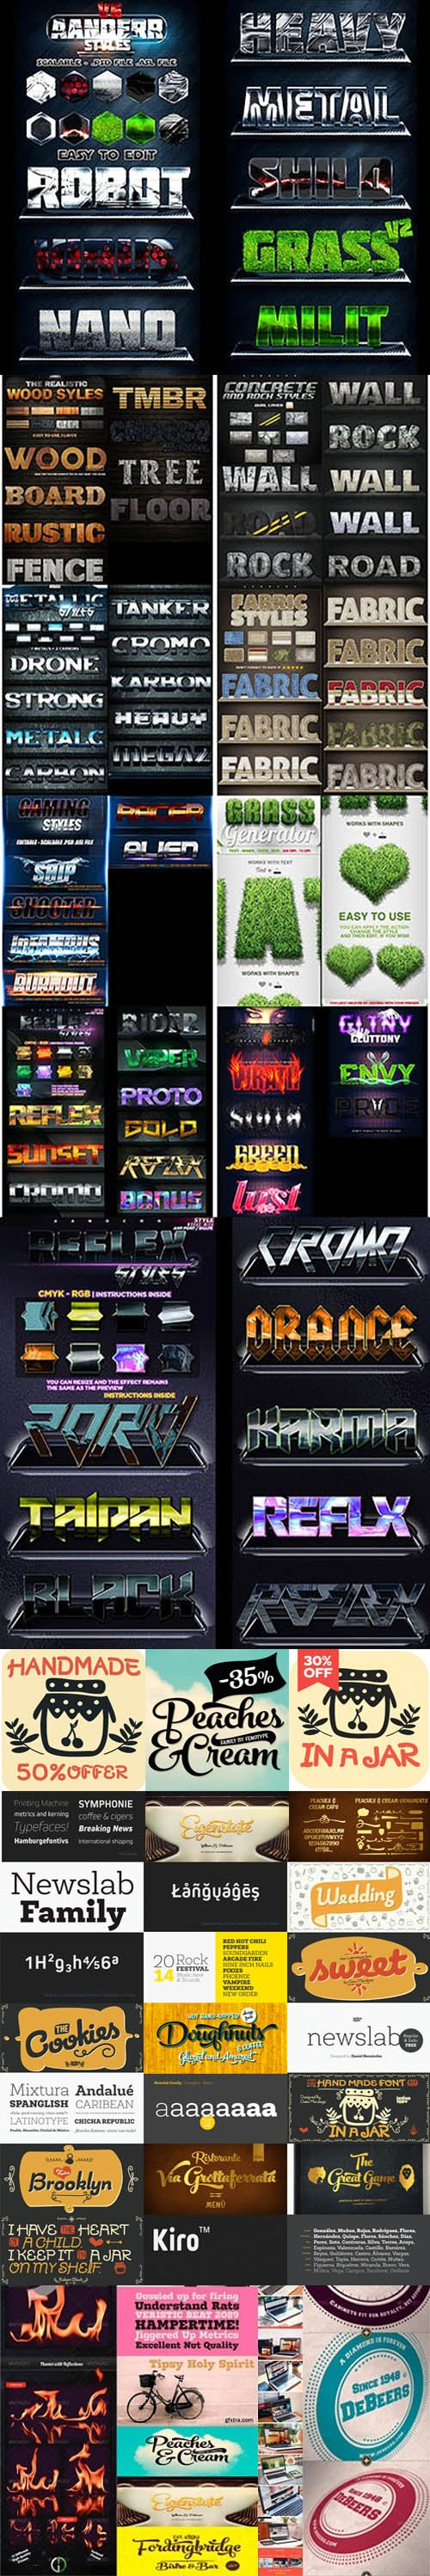 Graphicriver Collection - Photoshop Files + Fonts